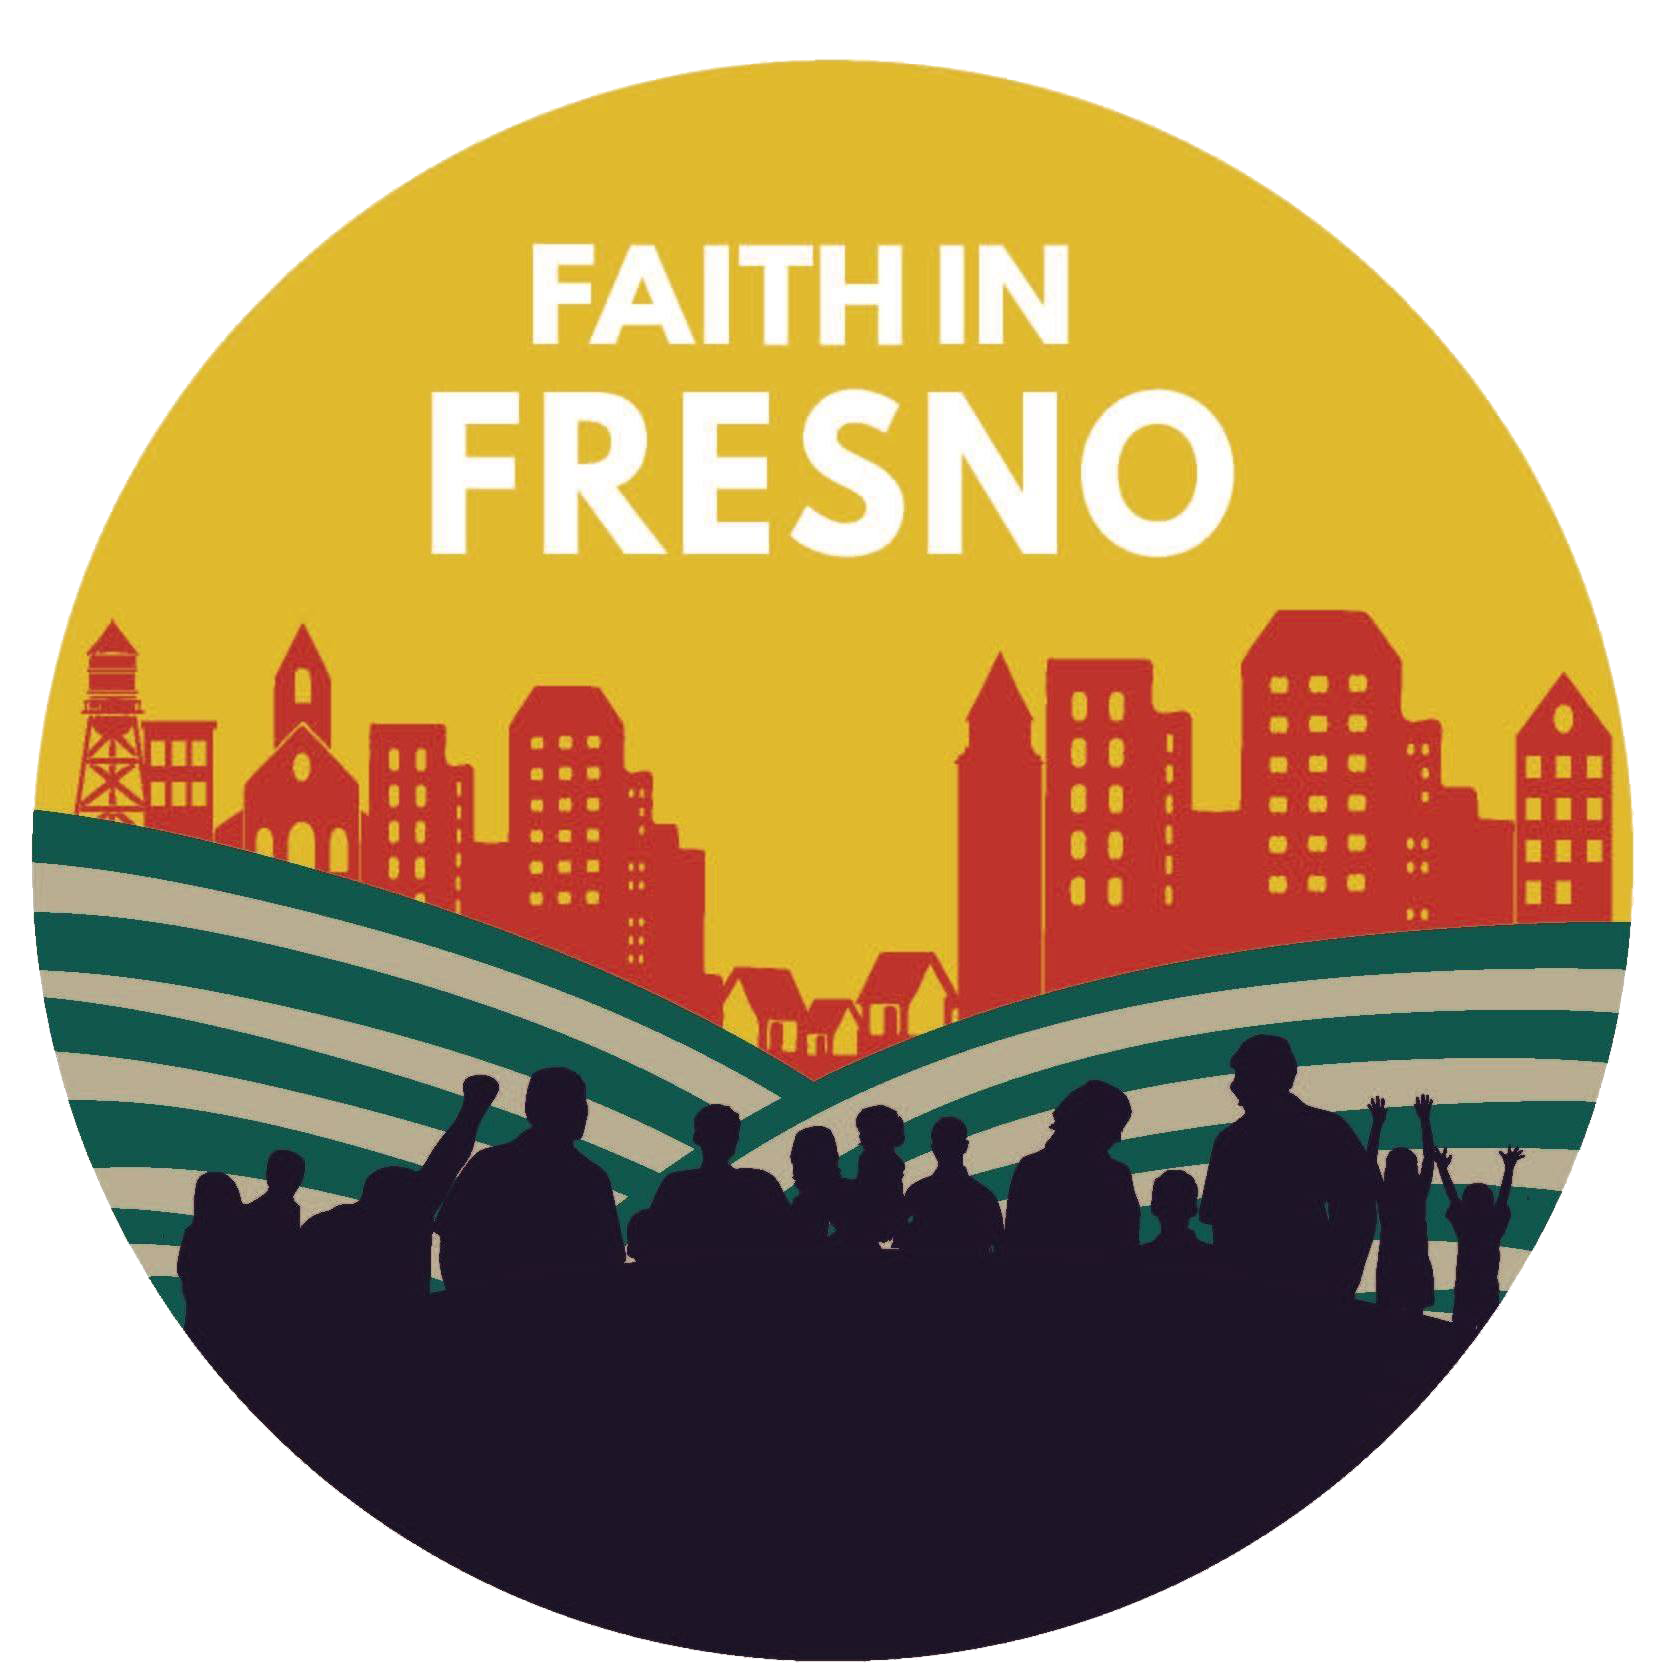 Faith in Fresno logo